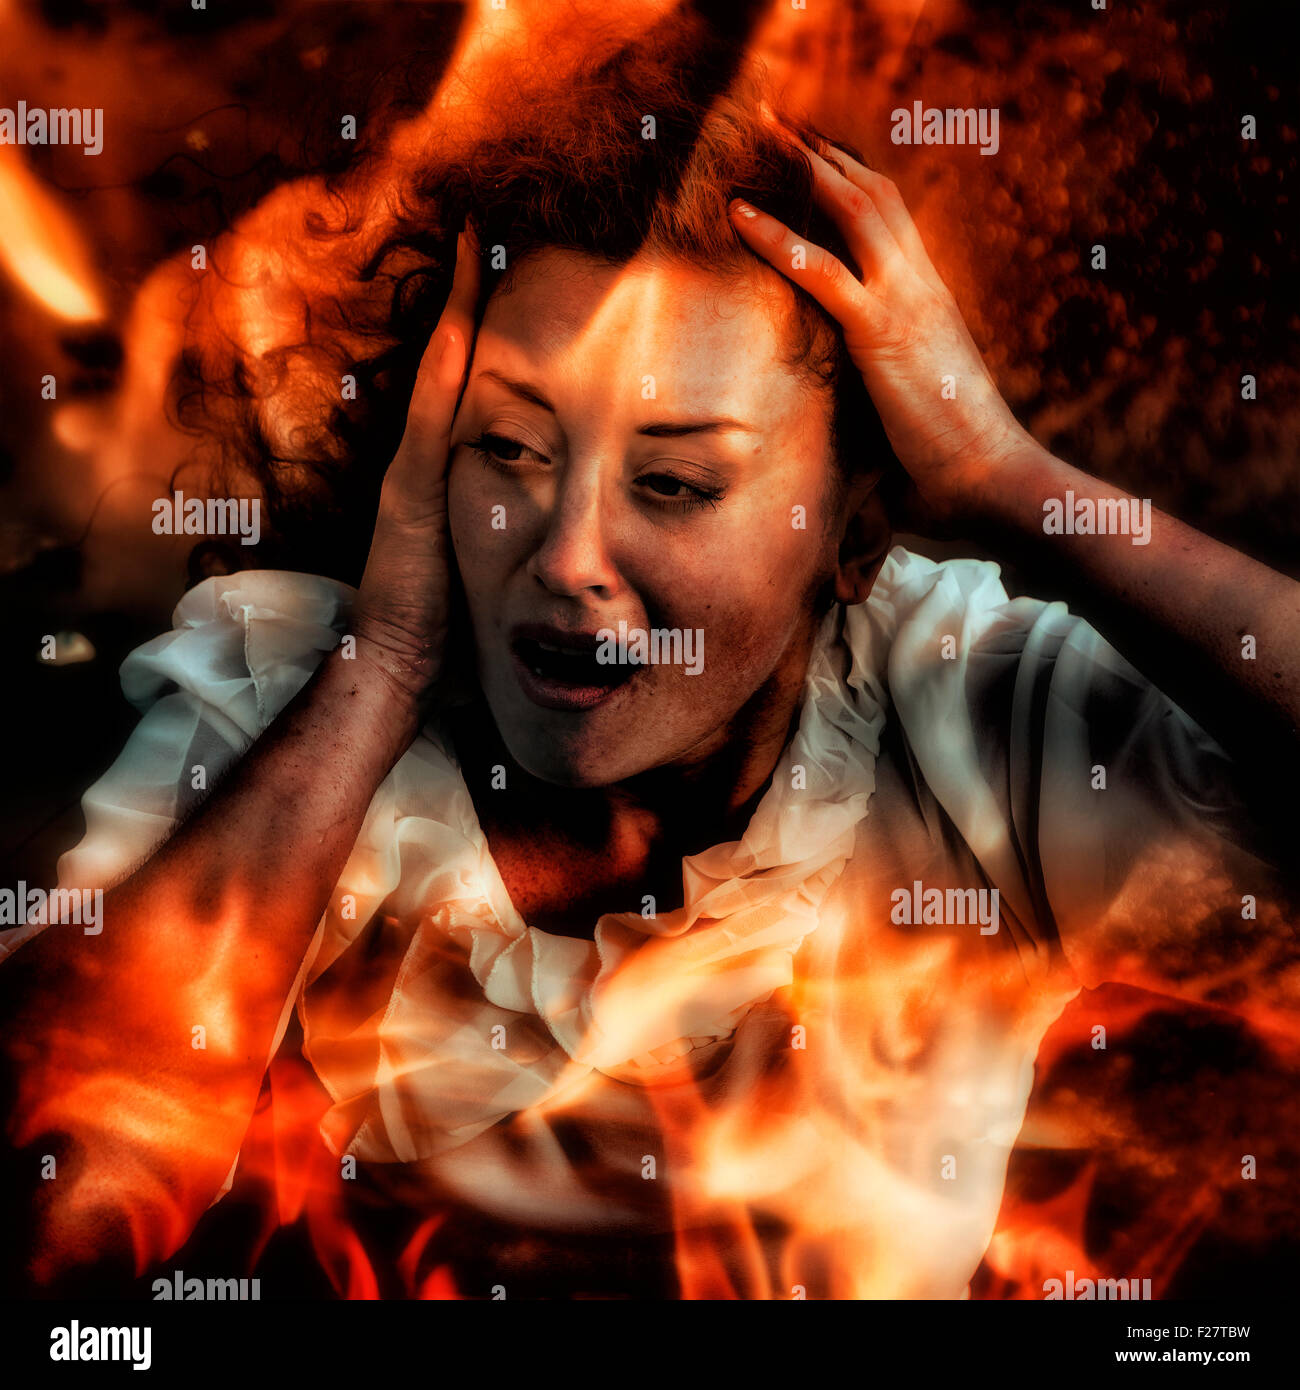 a woman looking through flames, screaming - Stock Image